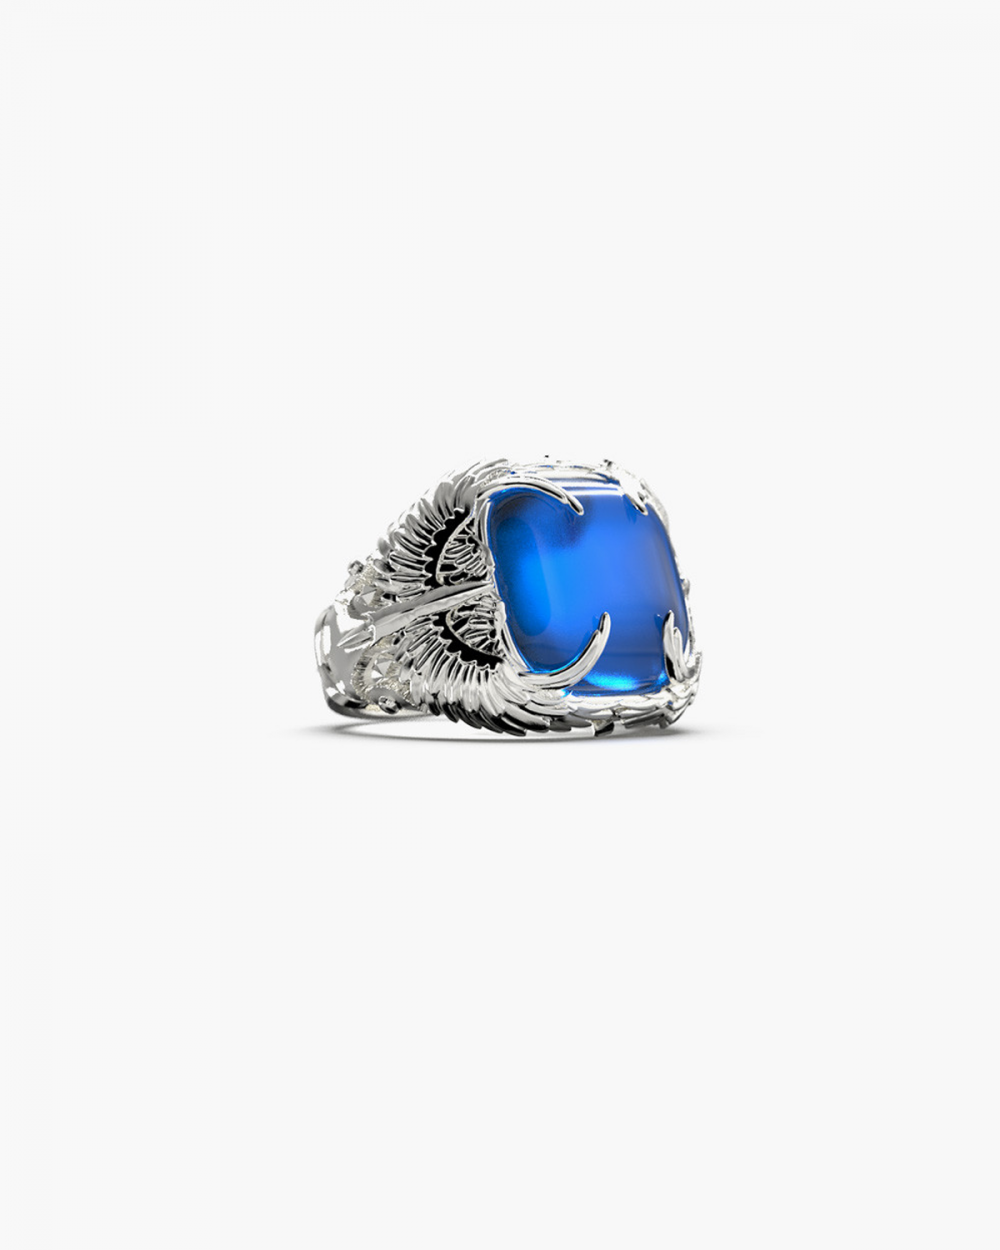 MYNOVE25 WINGS RING WITH STONE NOVE25